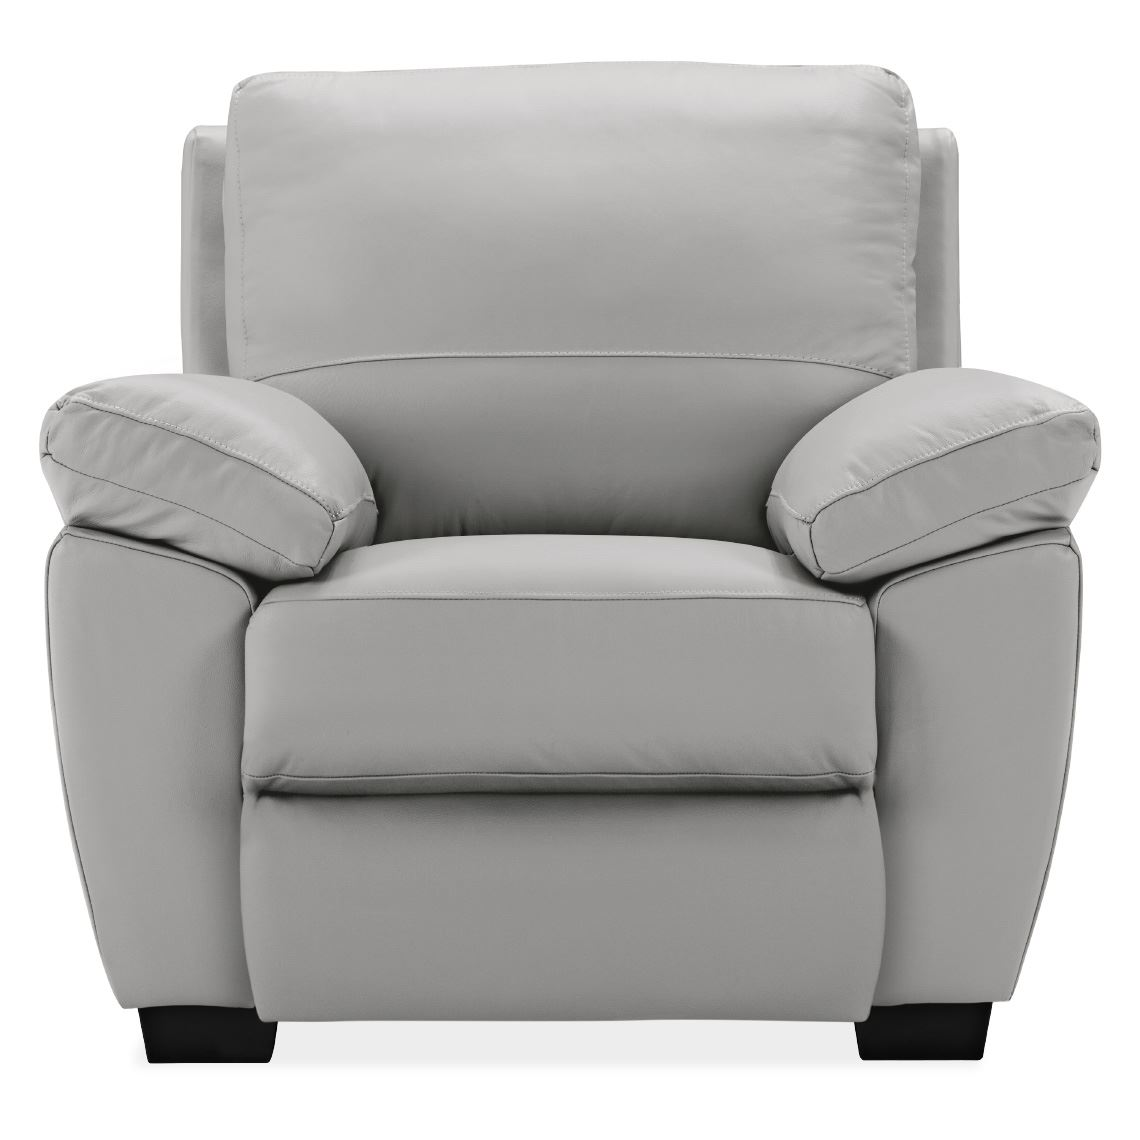 Fantastic Lucas Recliner Leather Electric Recliner Armchair In 2019 Bralicious Painted Fabric Chair Ideas Braliciousco